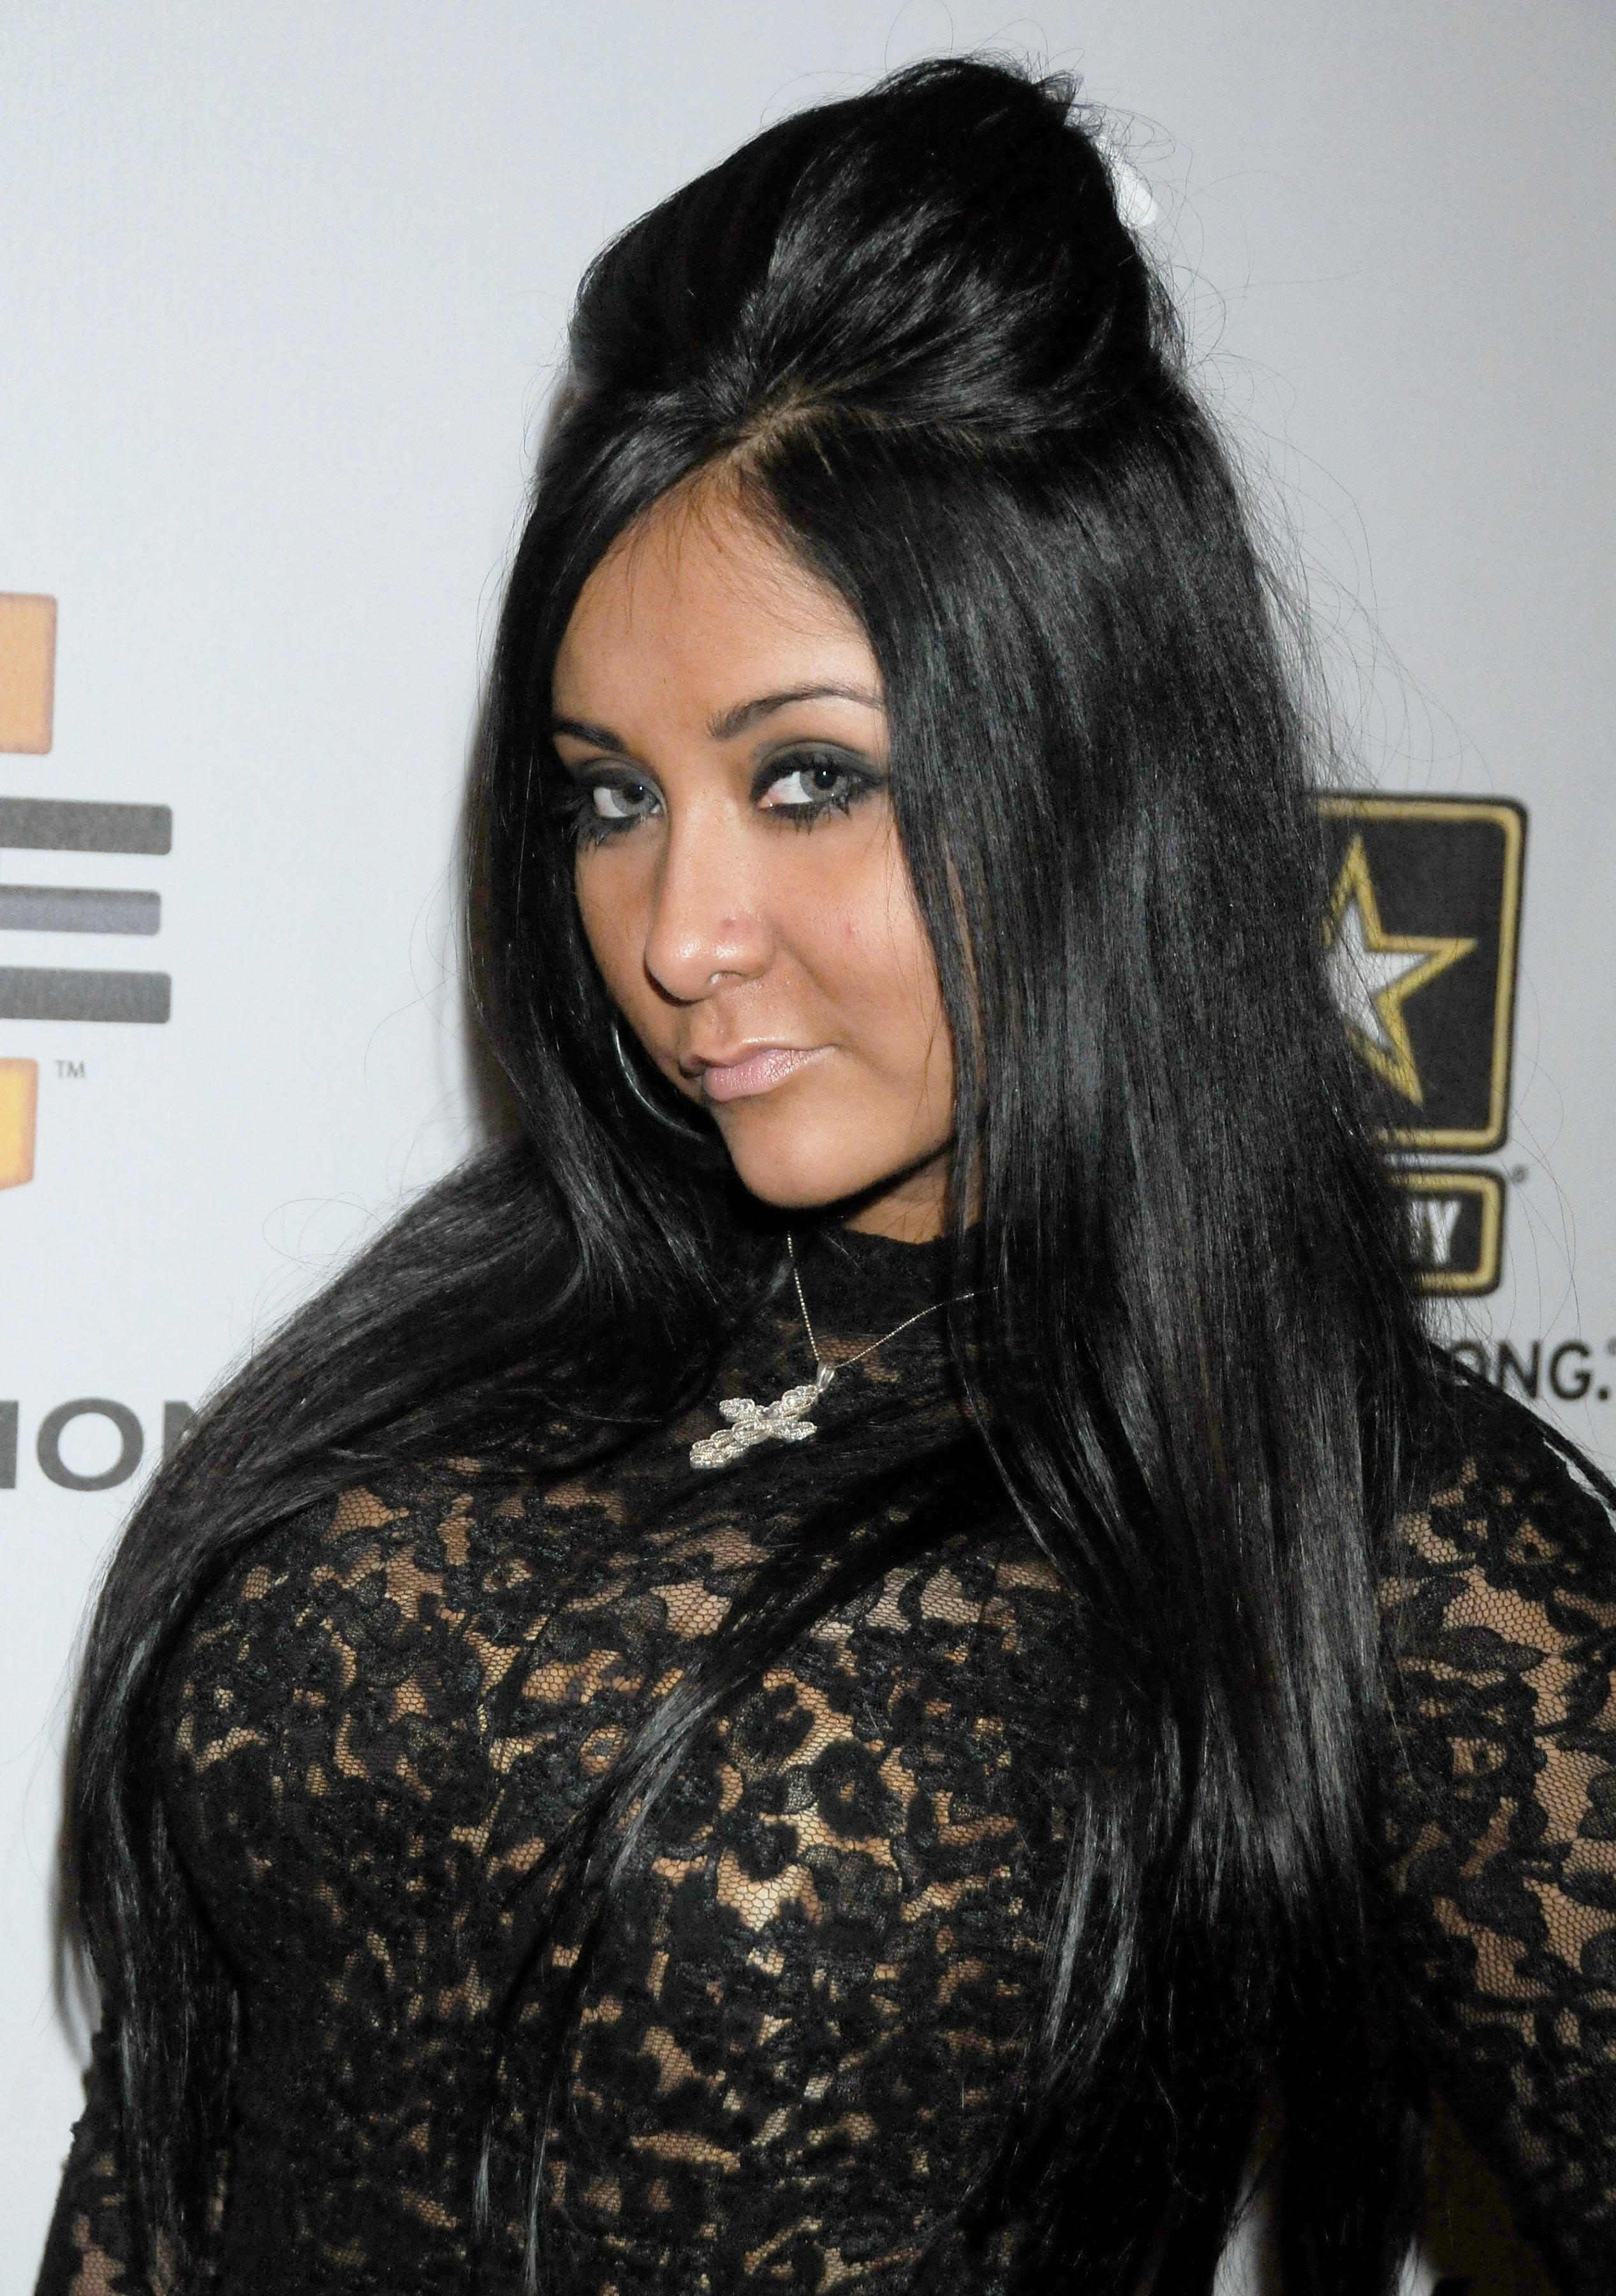 Snooki Chops Off Her Hair In Favor Of A Lob And Looks Better Than